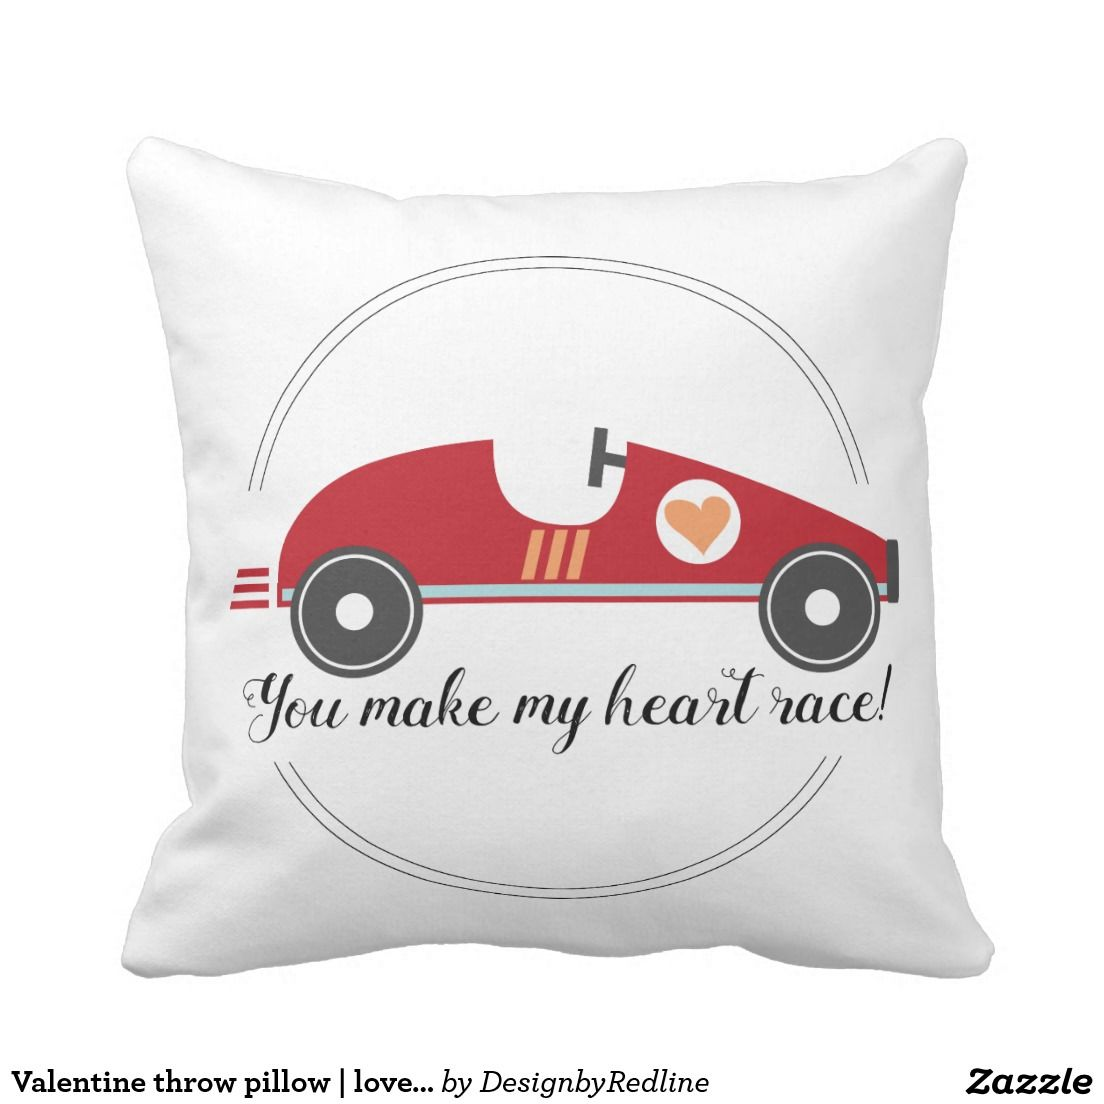 Valentine Throw Pillow Love Quote Race Car Pillows Throw